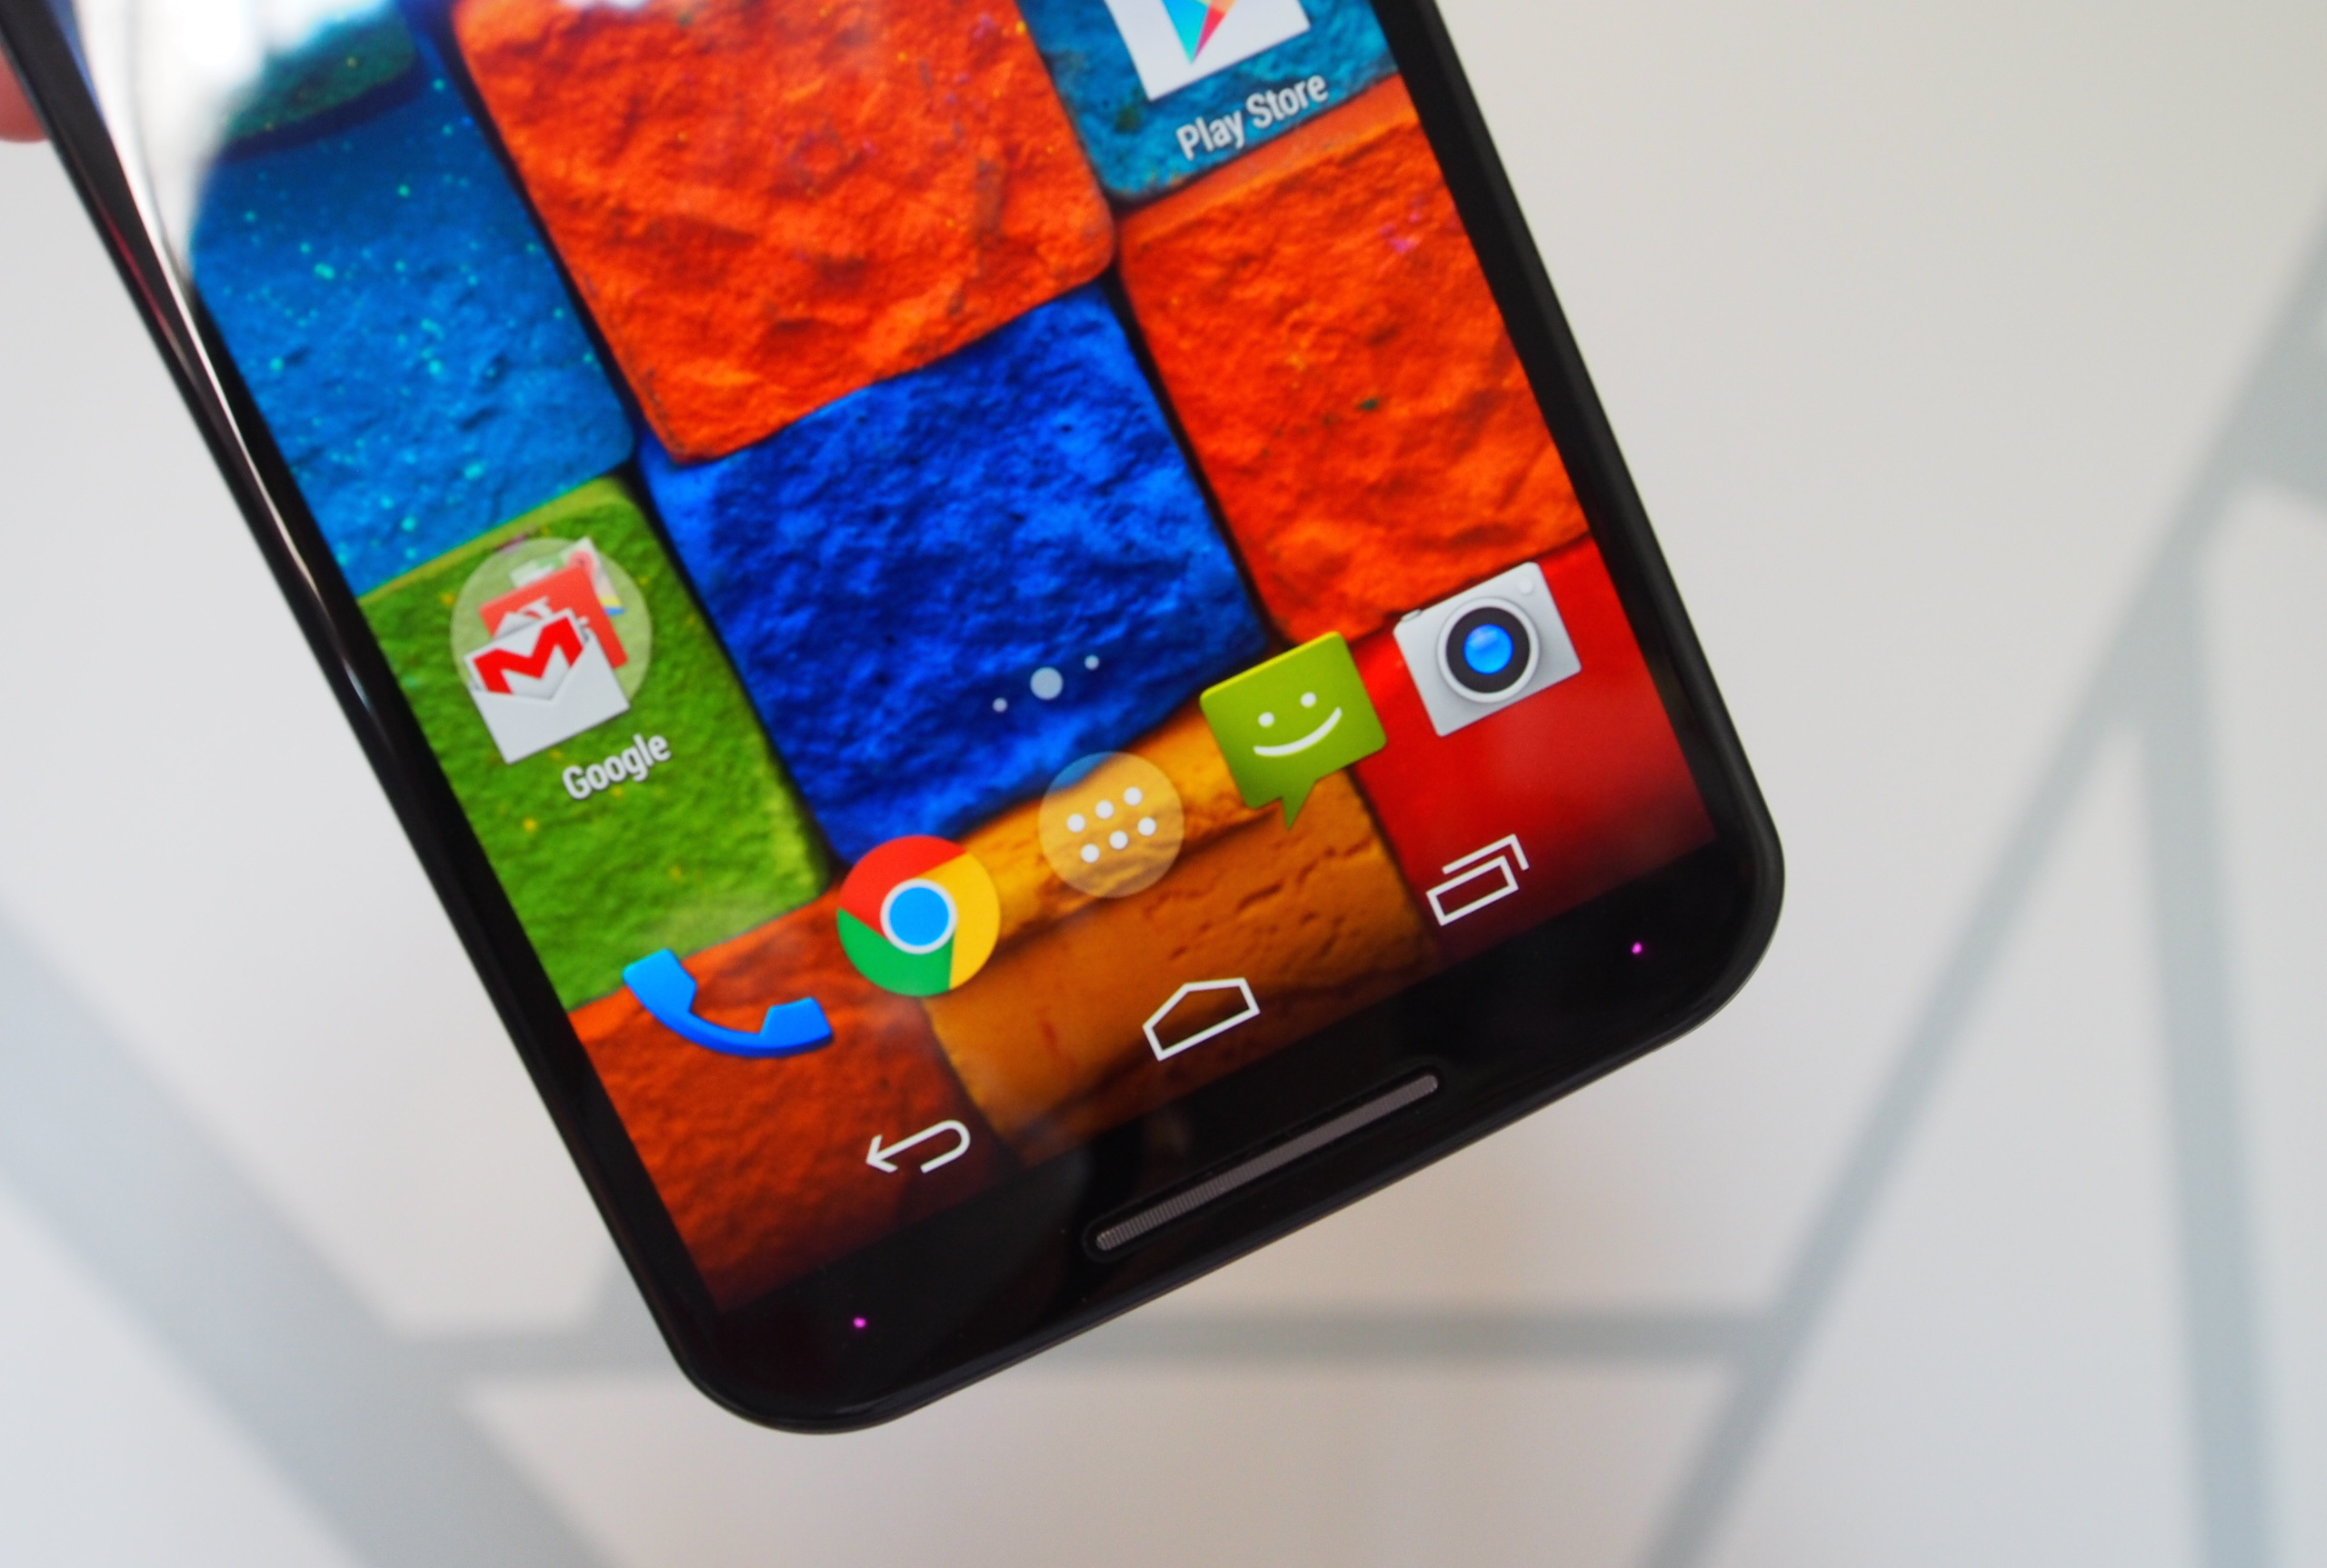 Phone Newest Android Phone 2014 the images for new android phones 2014 on design